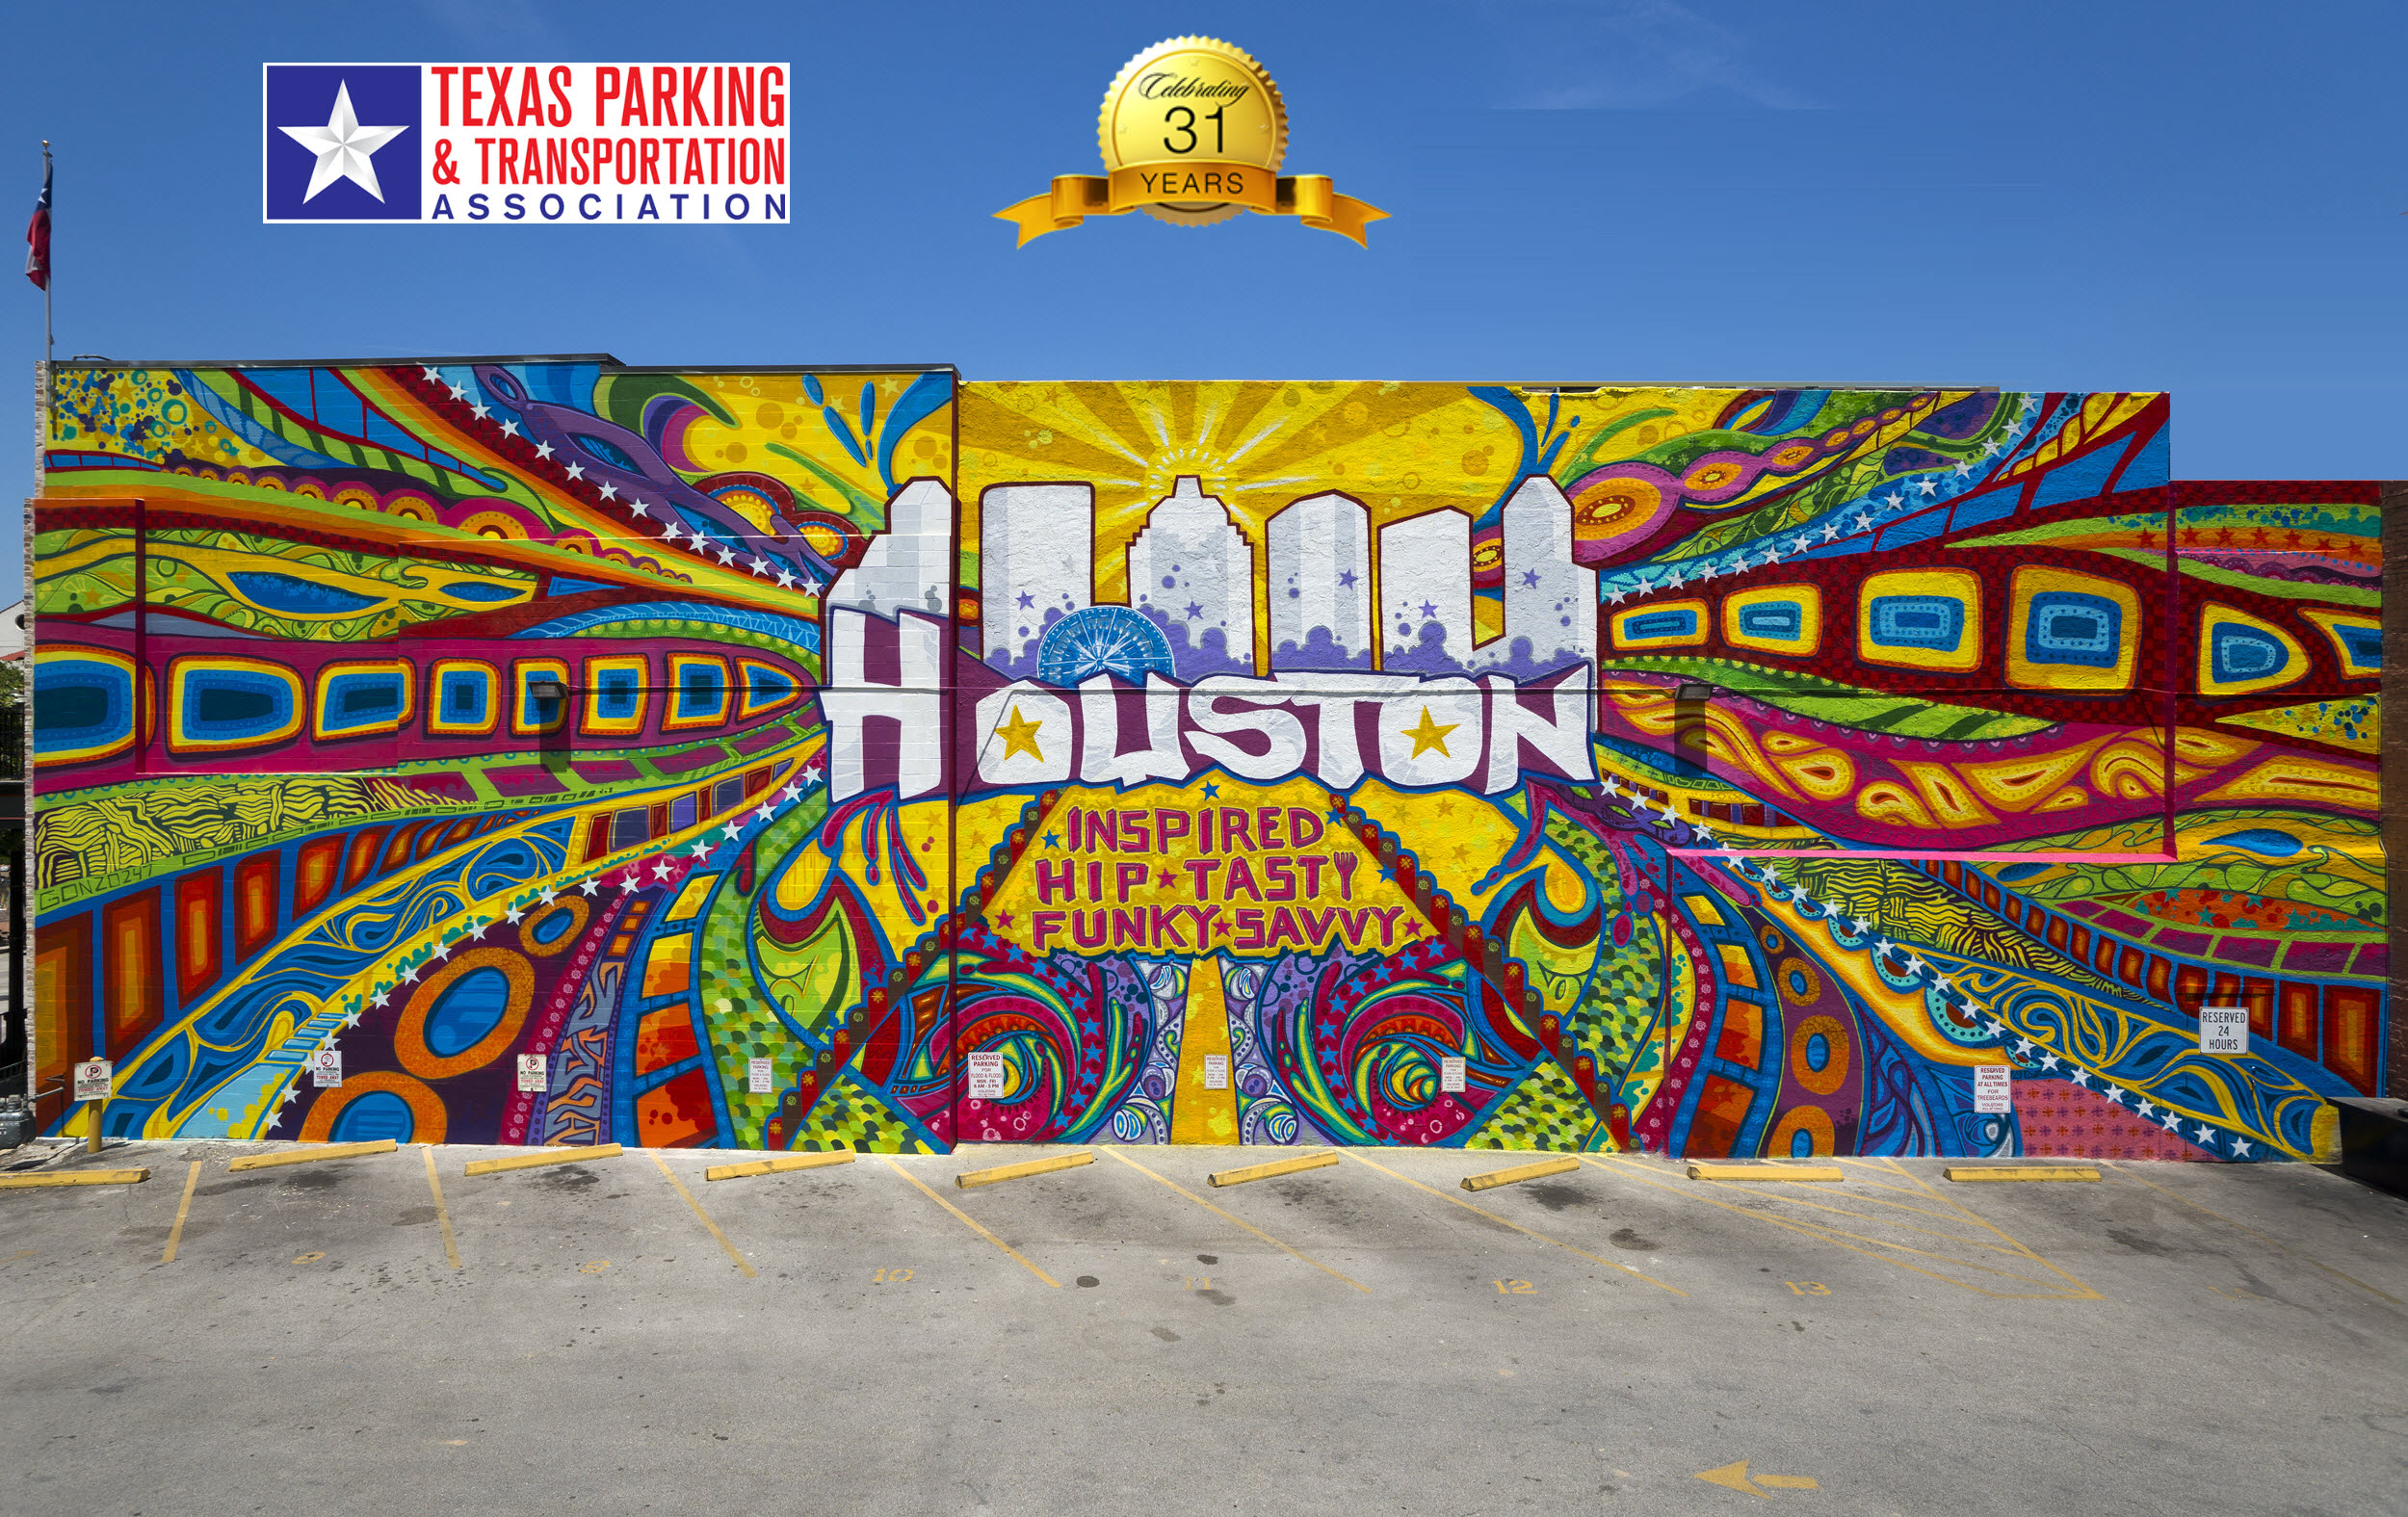 Texas Parking & Transportation Association 2018 Conference and Tradeshow